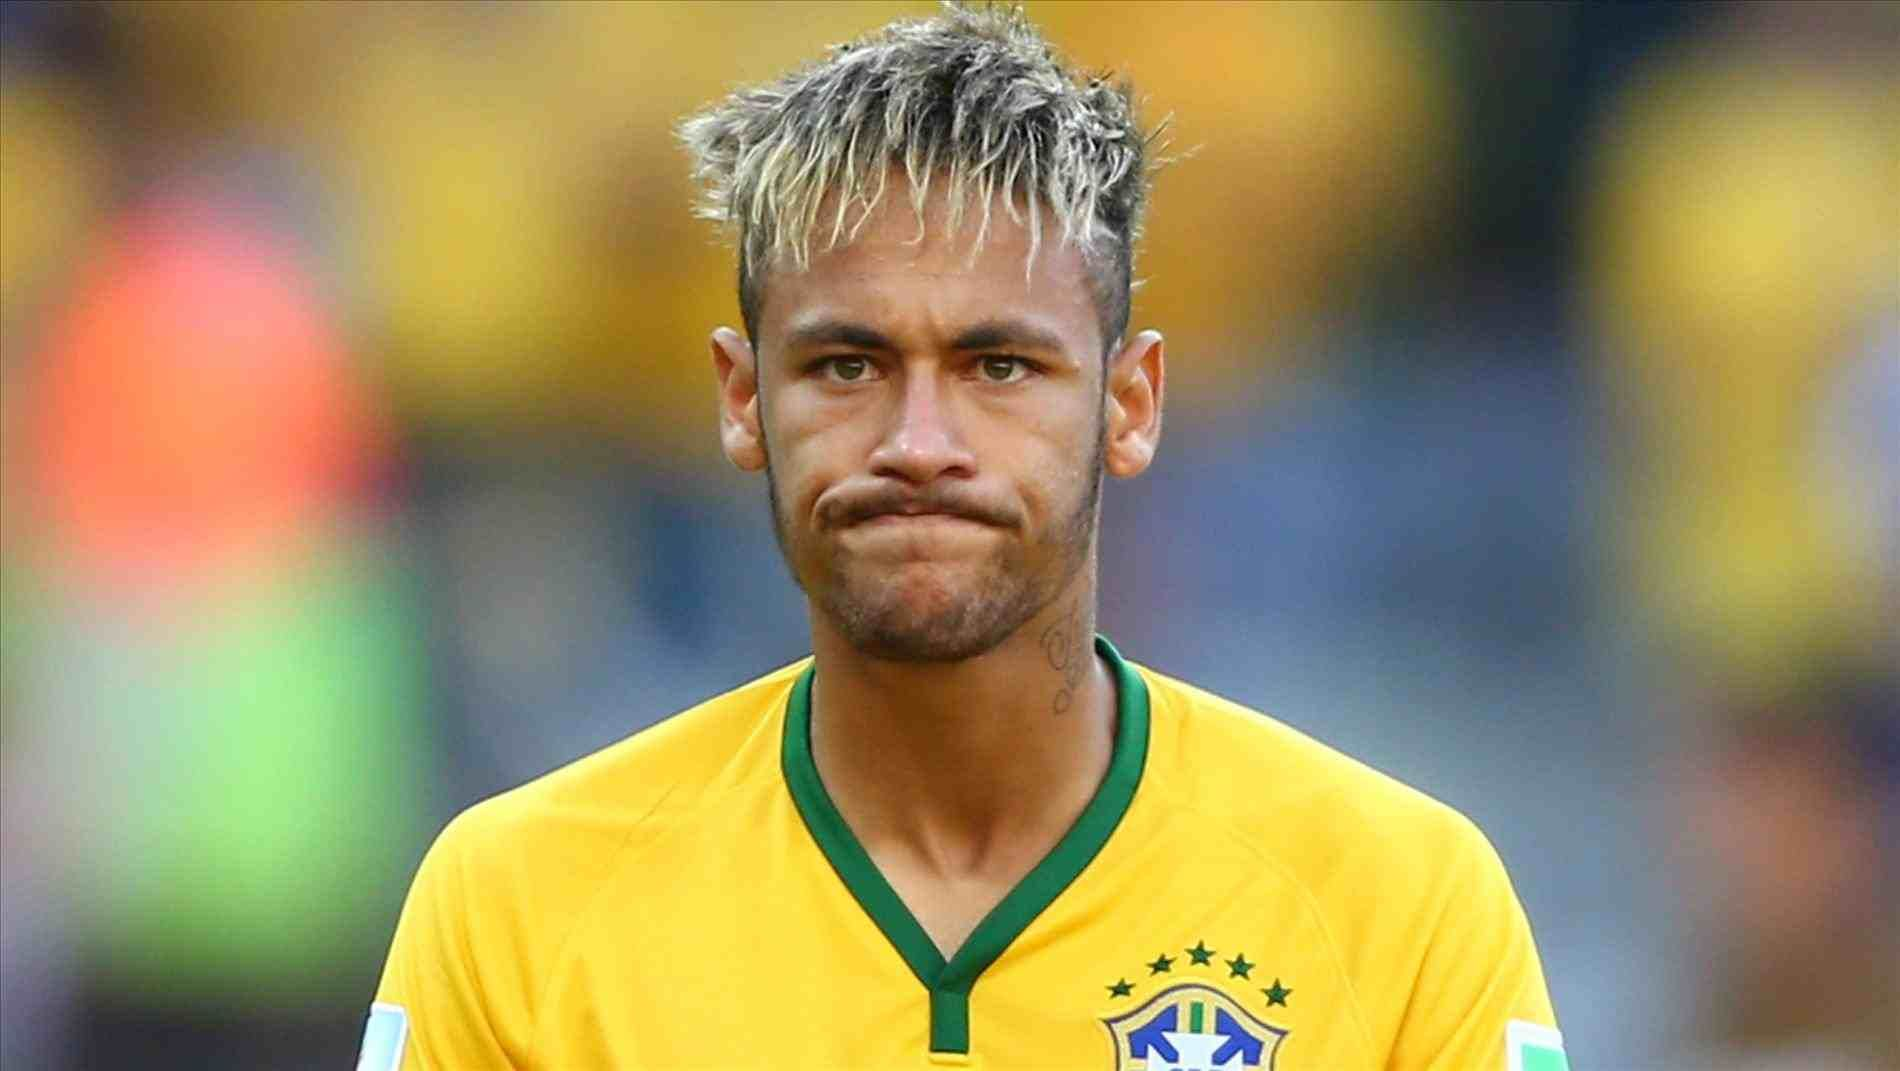 neymar hairstyle 2014 world cup back view | pinterest